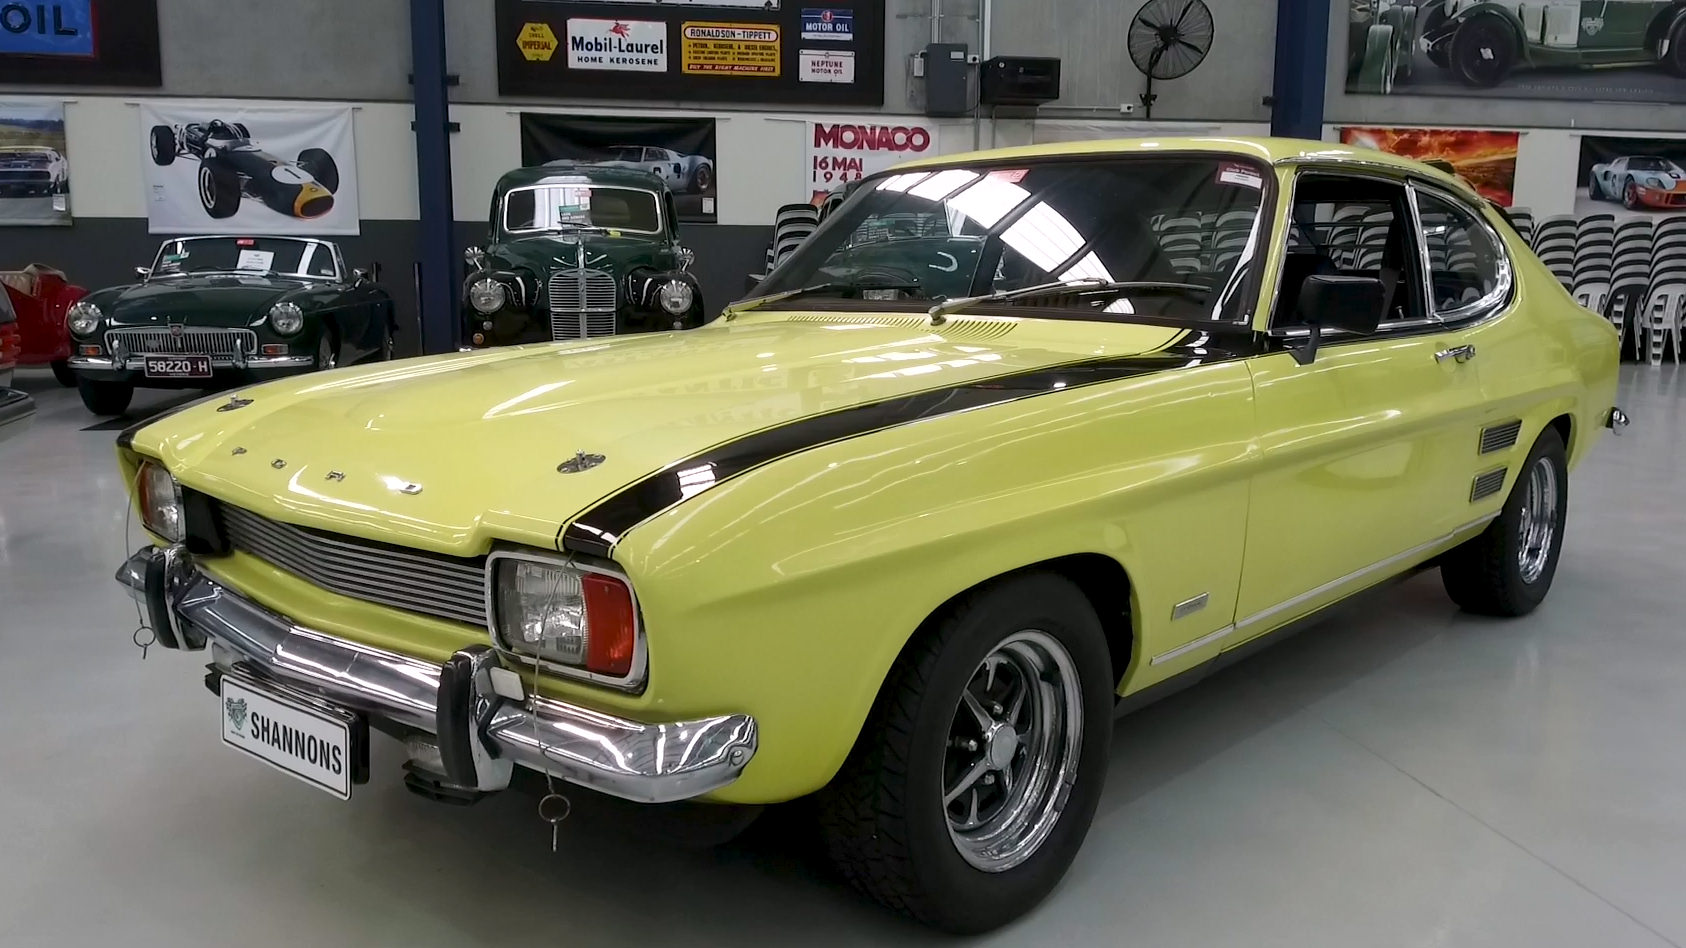 1972 Ford Capri 'Perana' V8 Coupe - 2021 Shannons Autumn Timed Online Auction